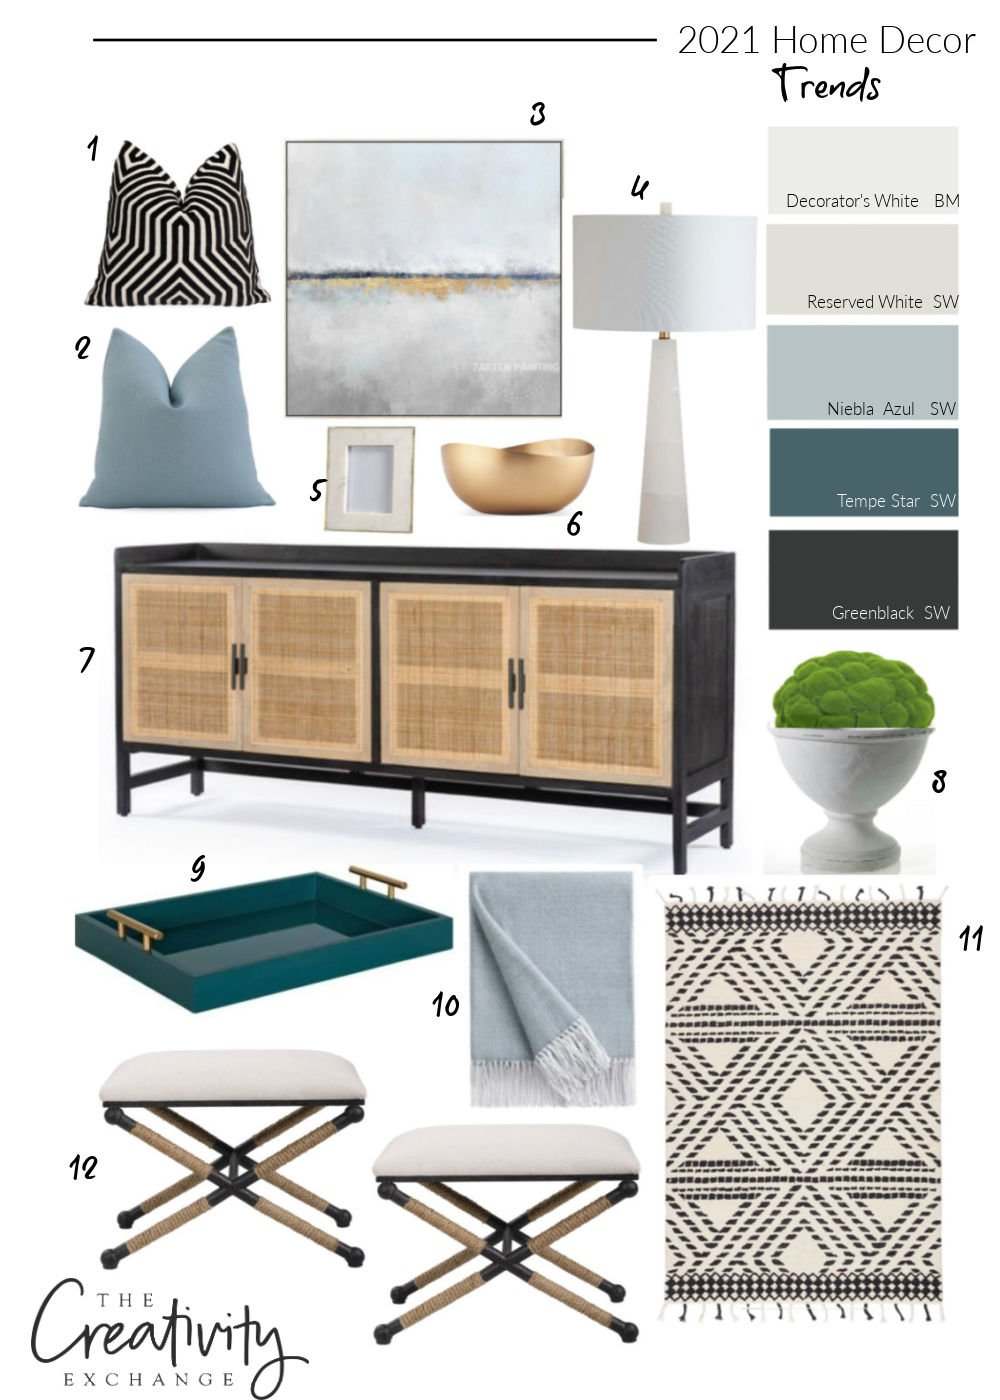 2021 Home Design and Color Trends.